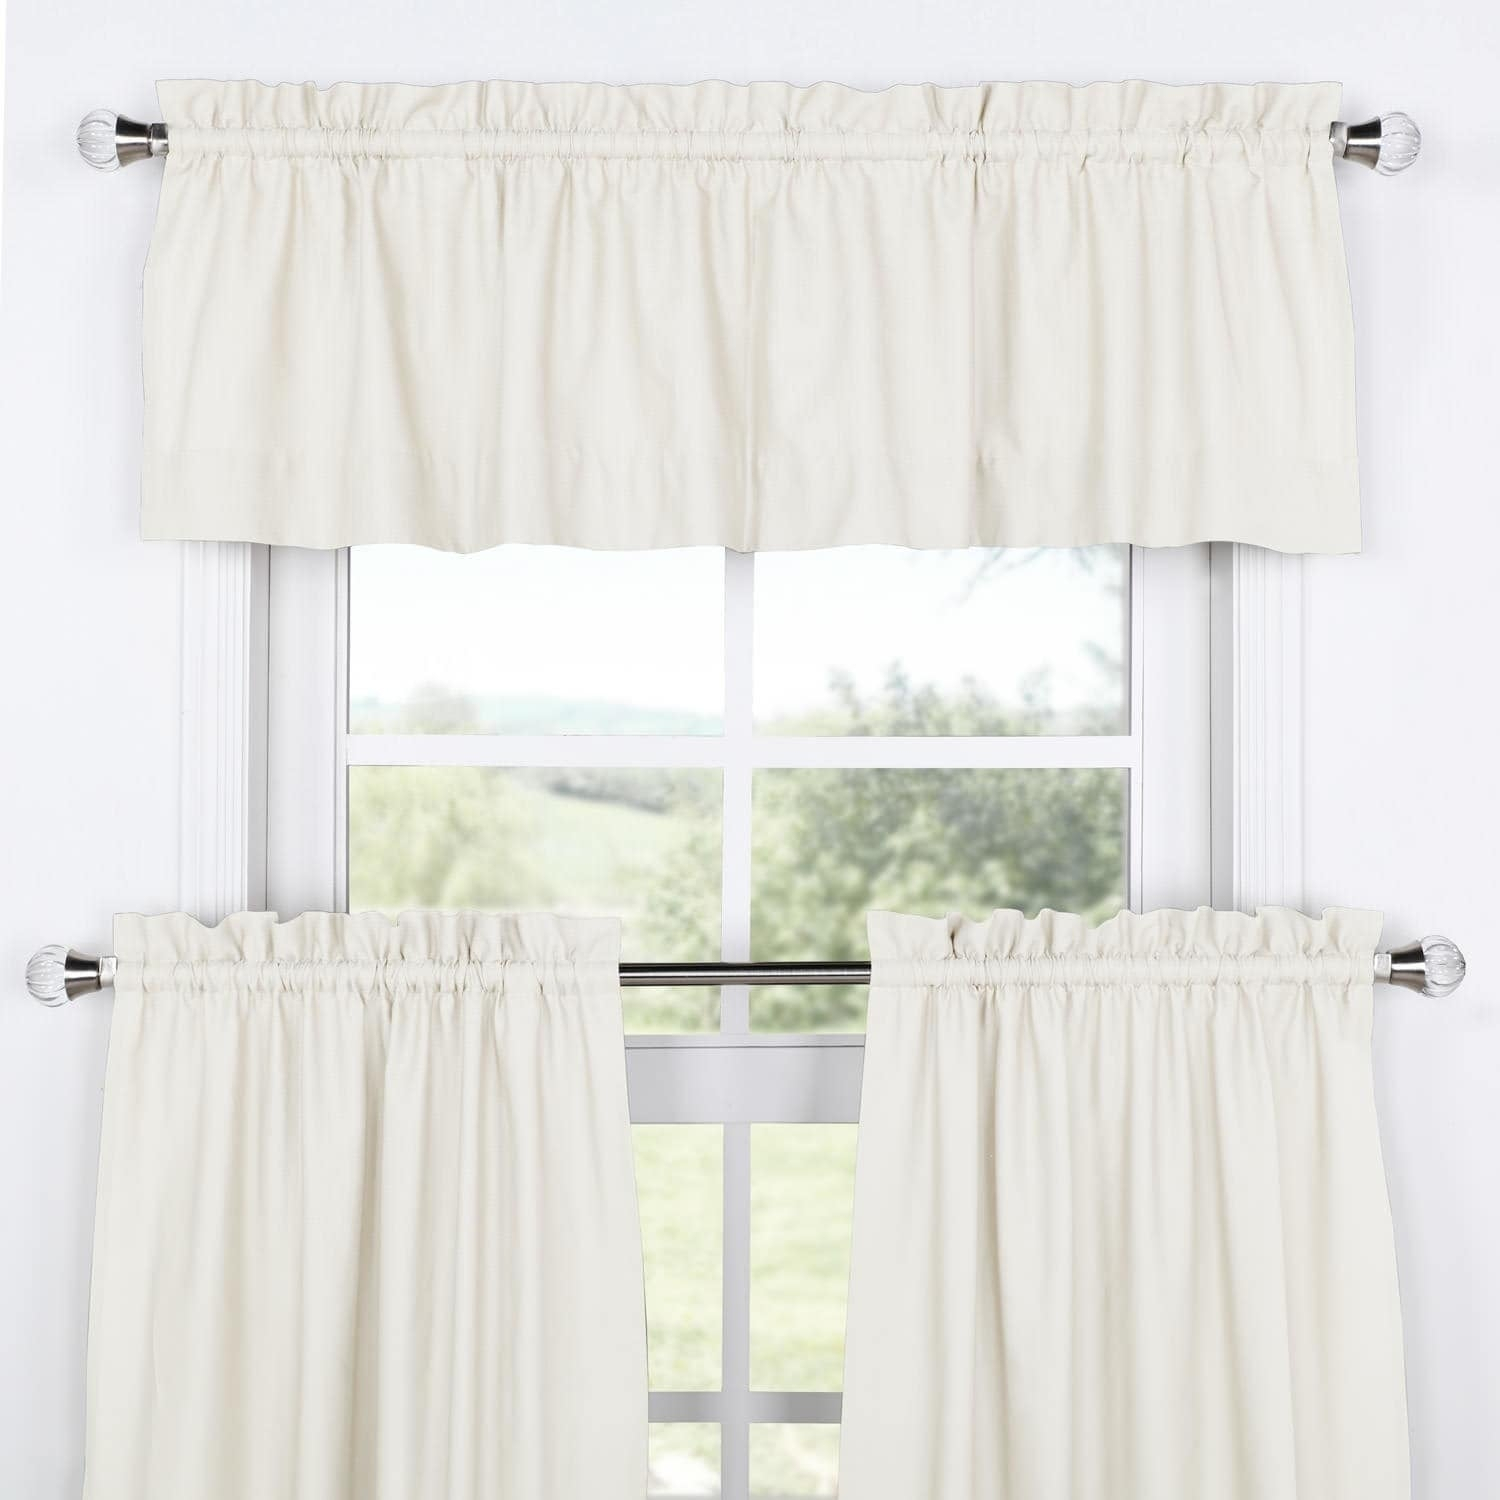 Exclusive Fabrics Solid Cotton Kitchen Tier Curtain & Valance Set (3pc) Inside Bermuda Ruffle Kitchen Curtain Tier Sets (View 16 of 20)